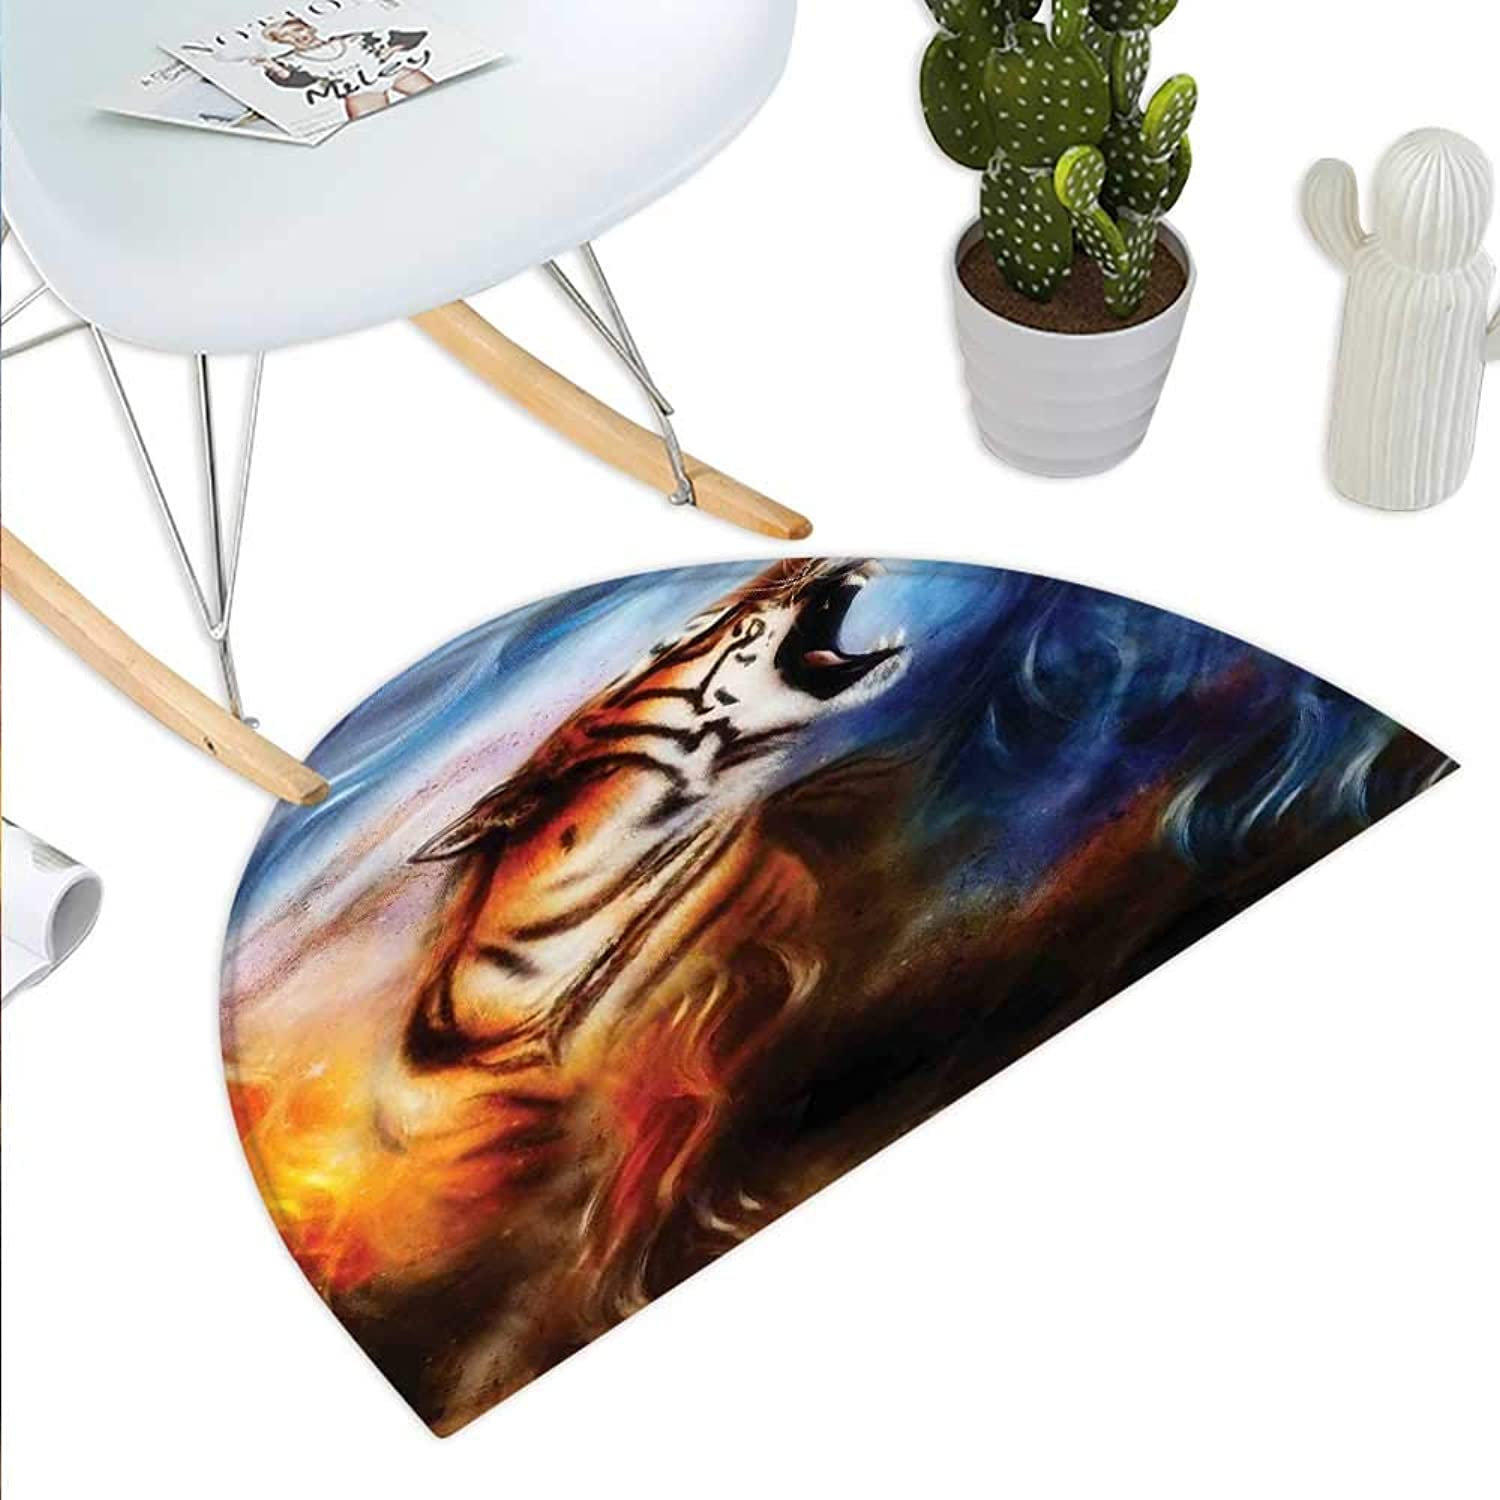 Safari Semicircle Doormat Wild and Angry Tiger Portrait Fire bluee Flame Brave Mammal Forest King Roar Halfmoon doormats H 35.4  xD 53.1  bluee orange Black